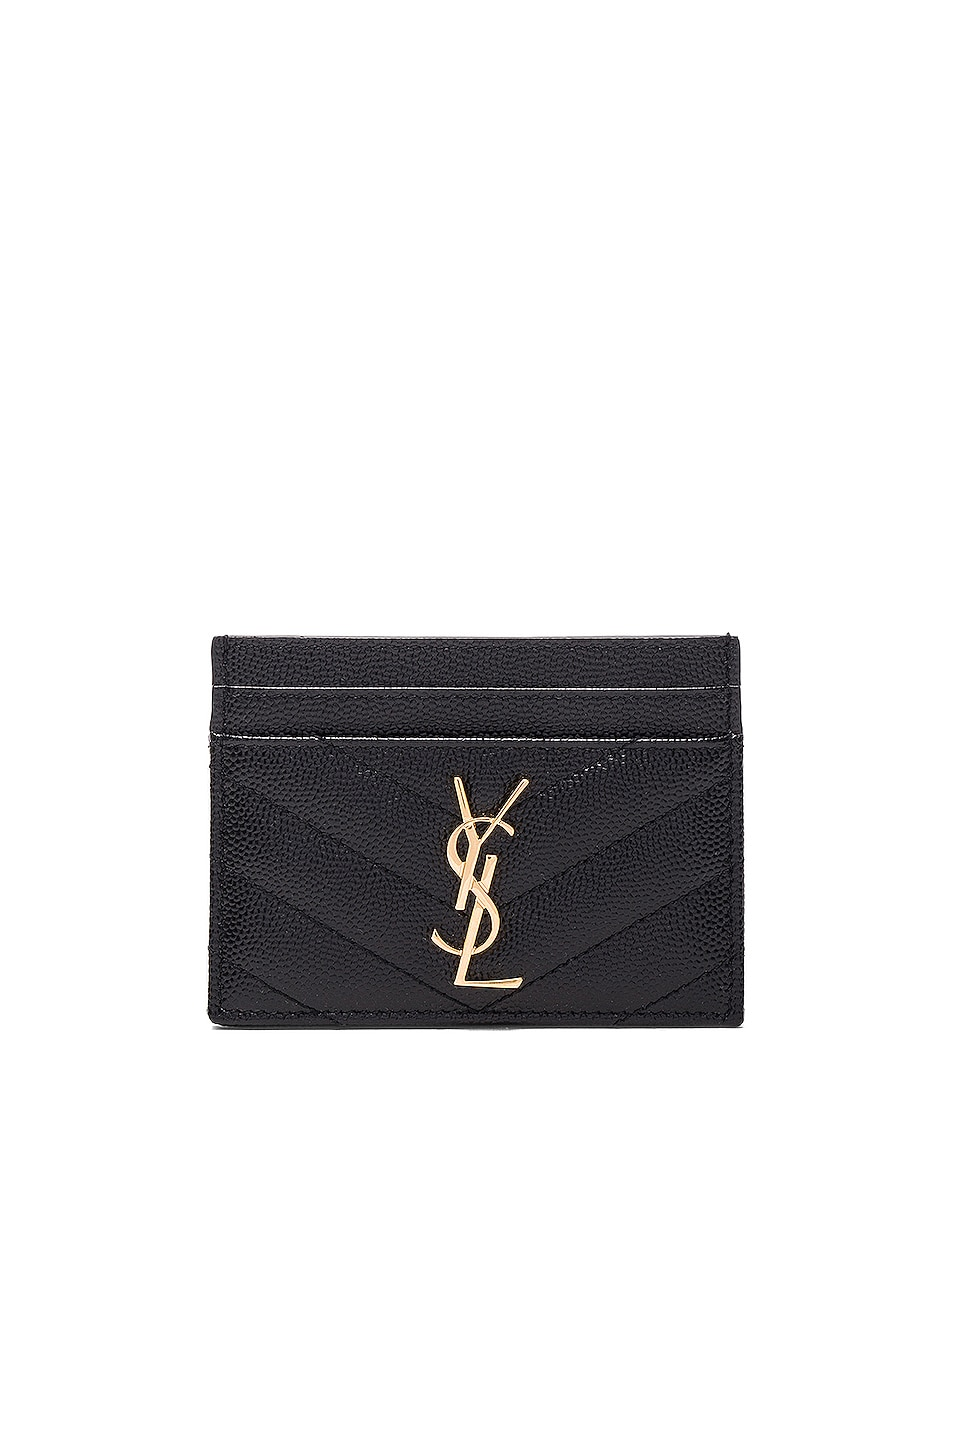 Image 1 of Saint Laurent Monogramme Quilted Credit Card Case in Black & Gold